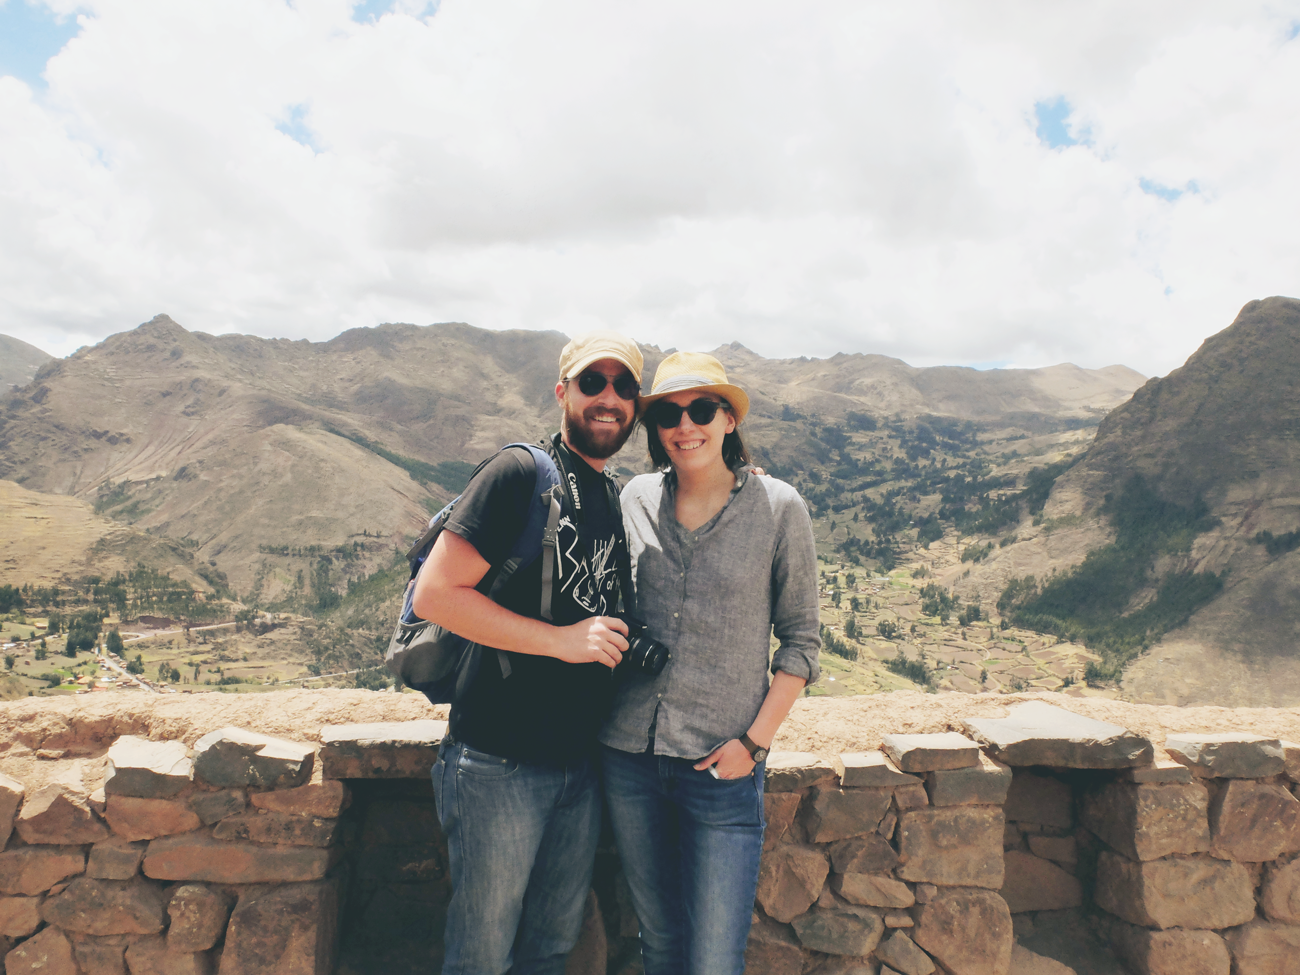 us-in-front-of-mountain